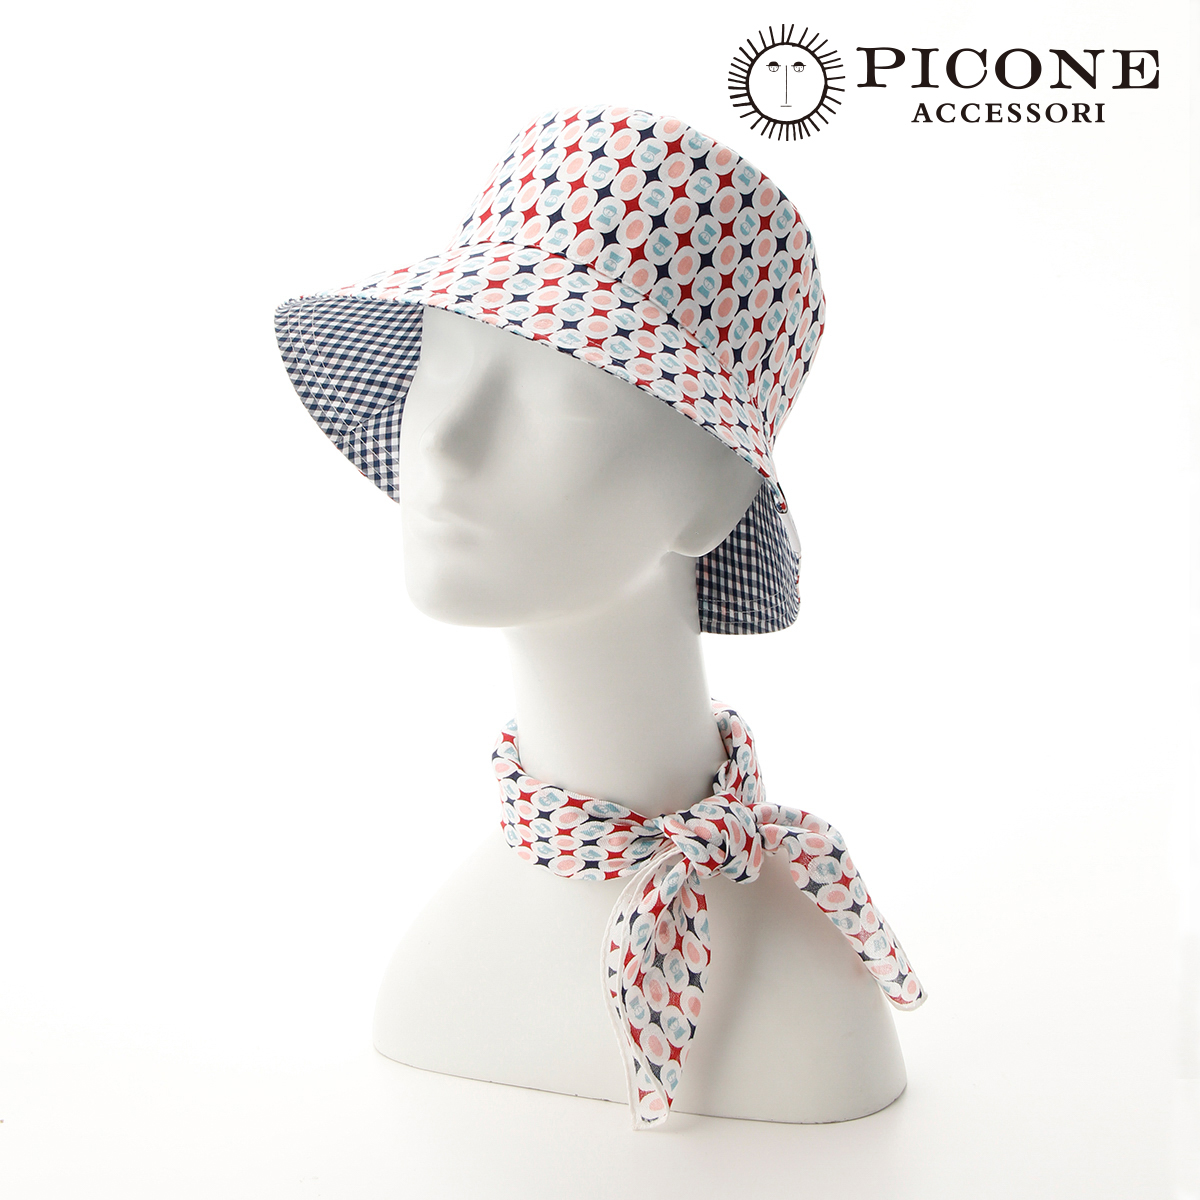 picone japan accessories 2016 (13)